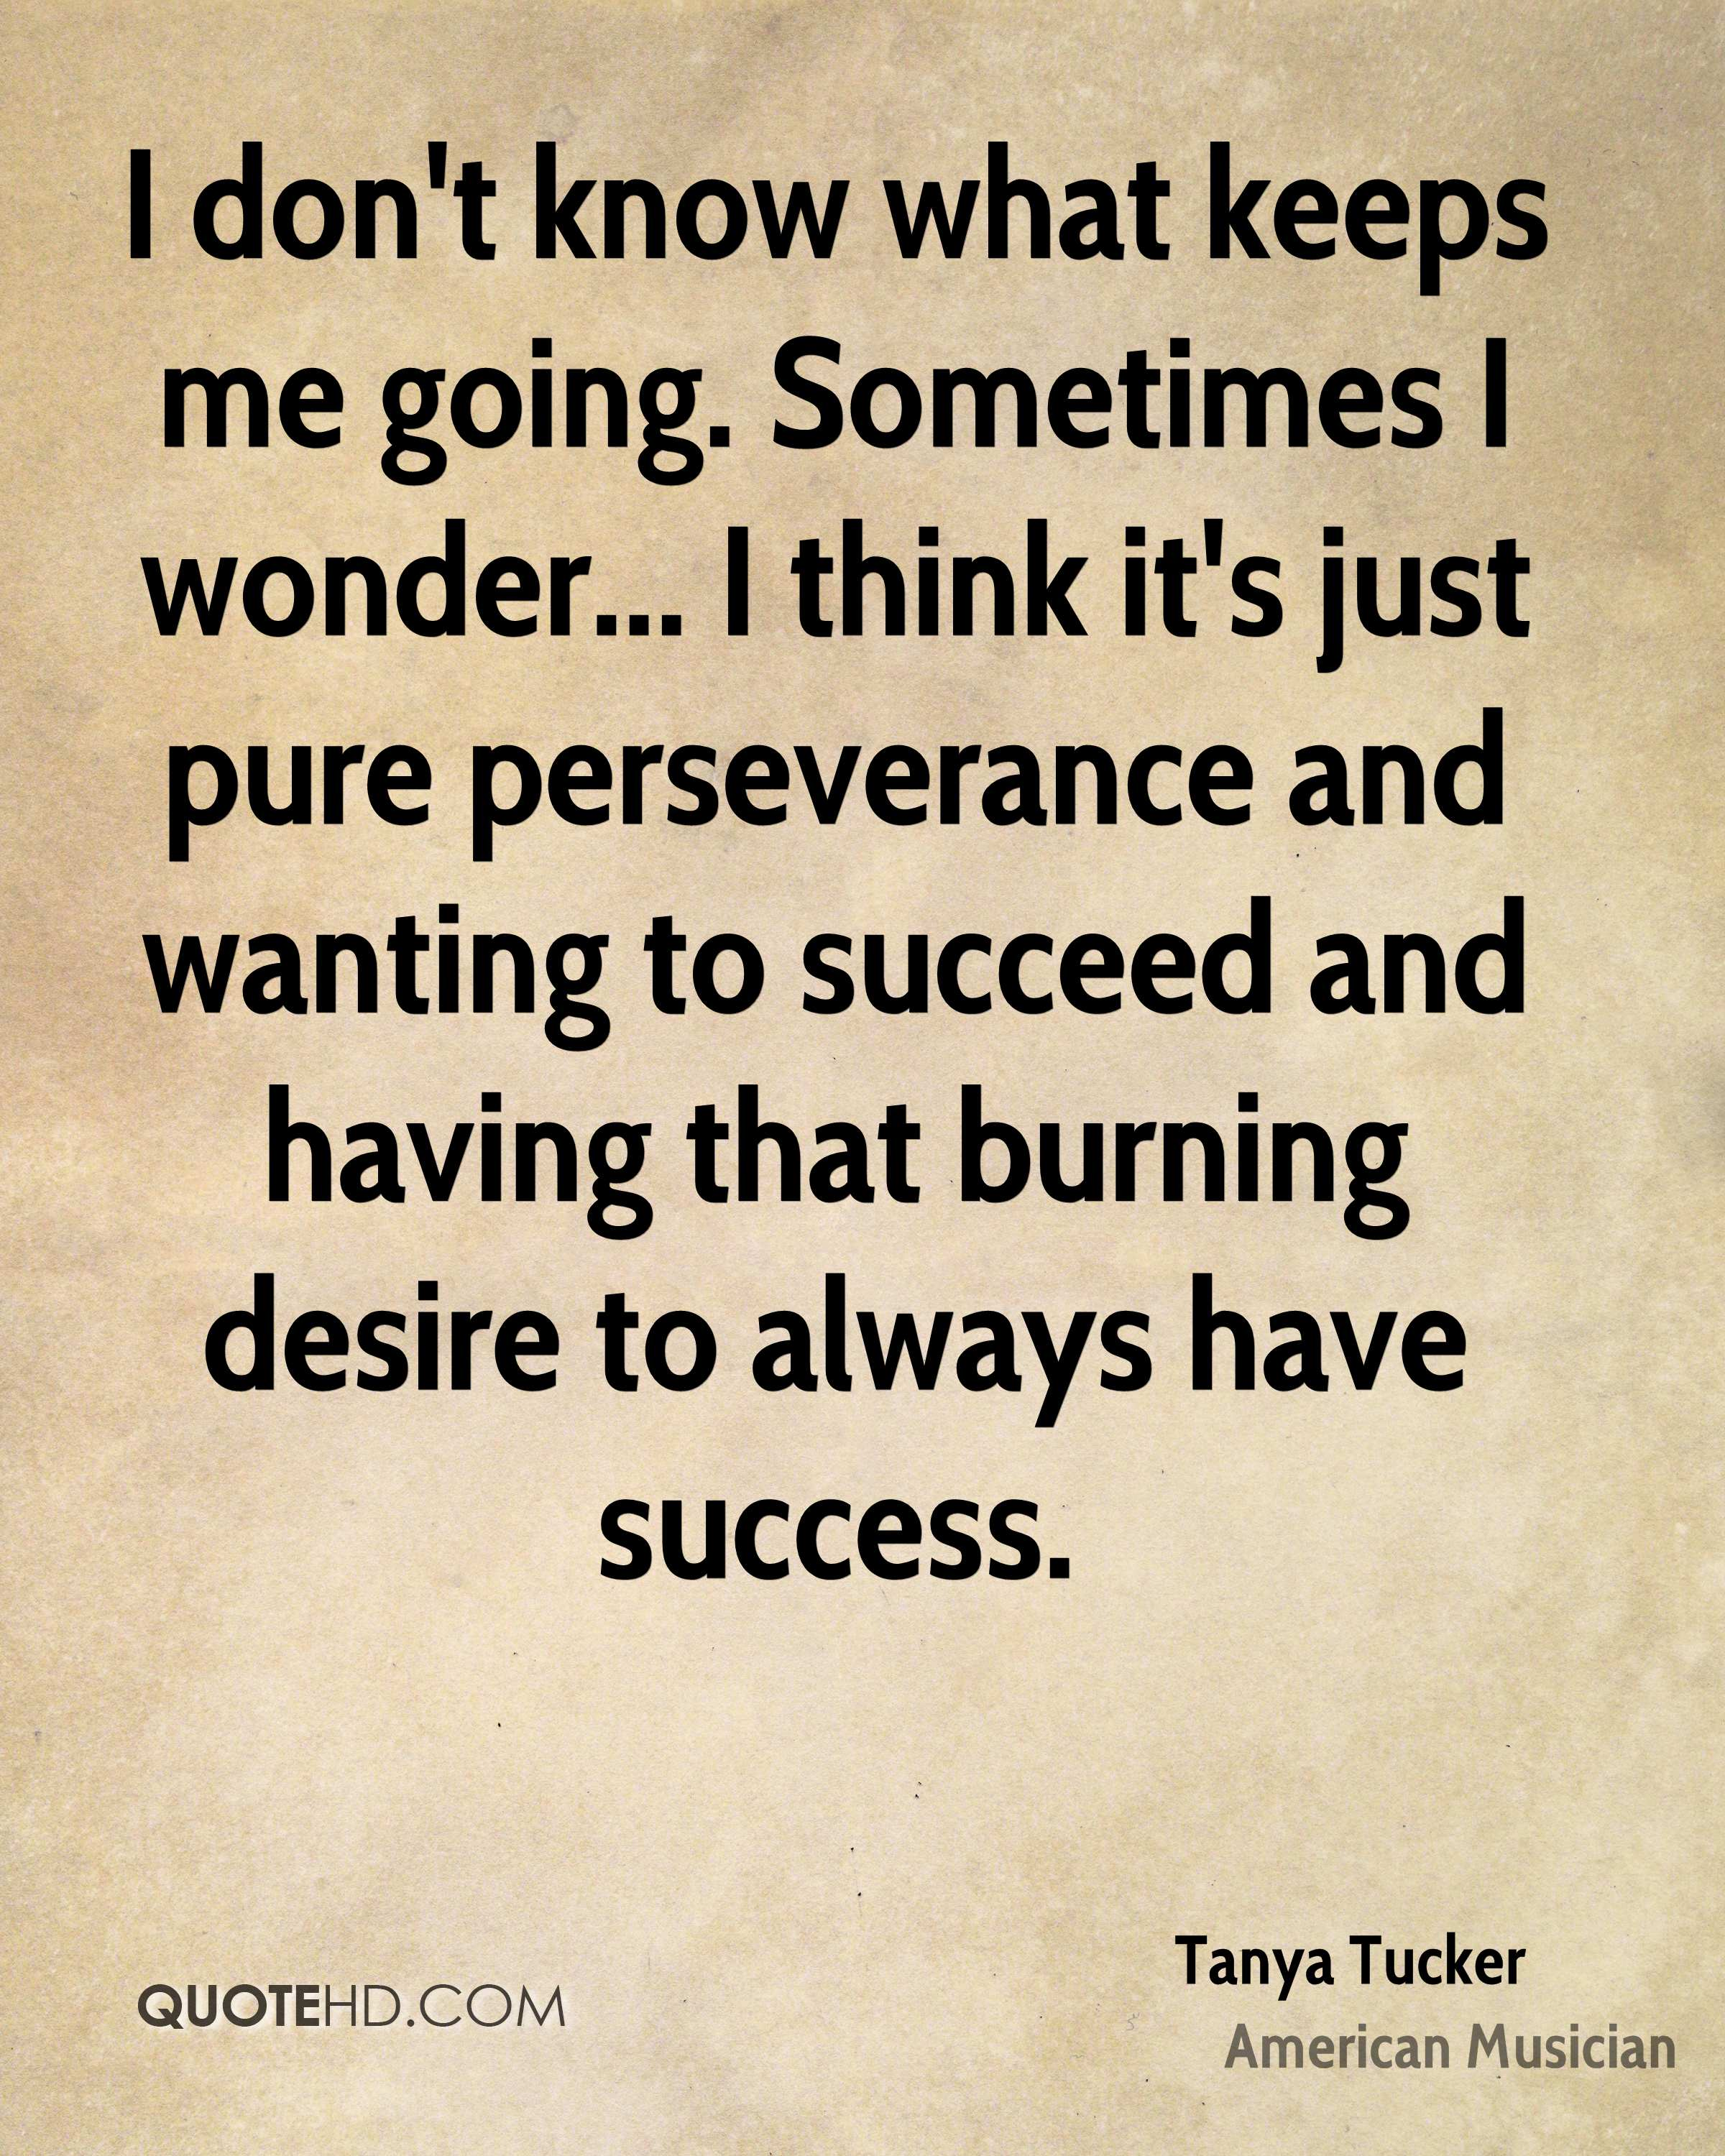 I don't know what keeps me going. Sometimes I wonder... I think it's just pure perseverance and wanting to succeed and having that burning desire to always have success.